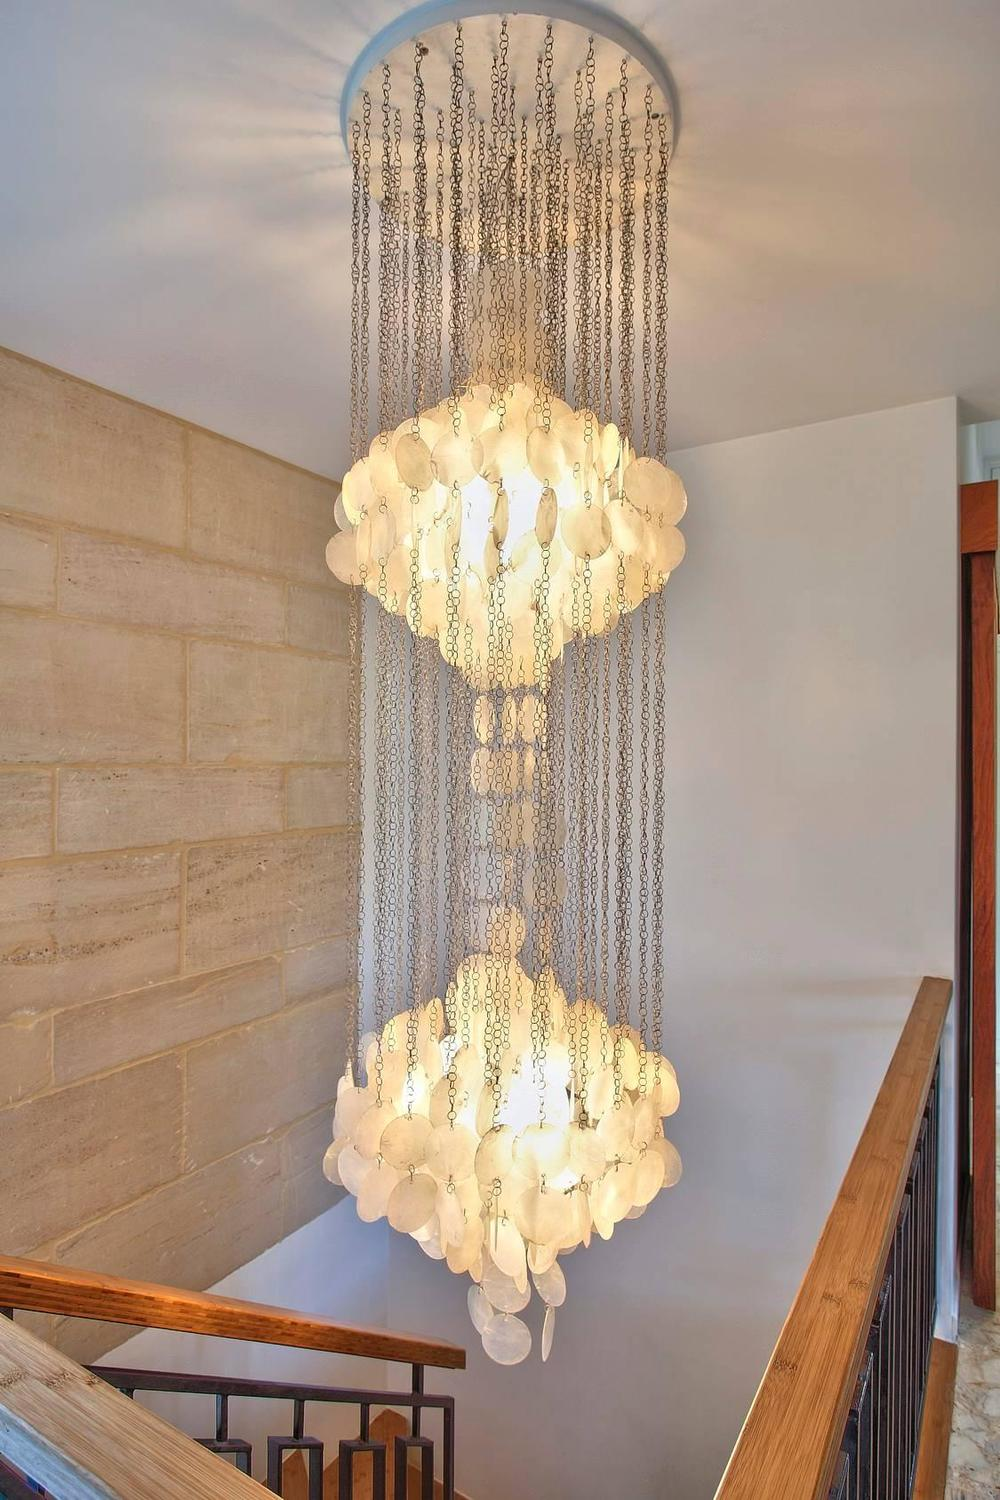 Suspended lamps by verner panton fun model for sale at for Funny lamps for sale